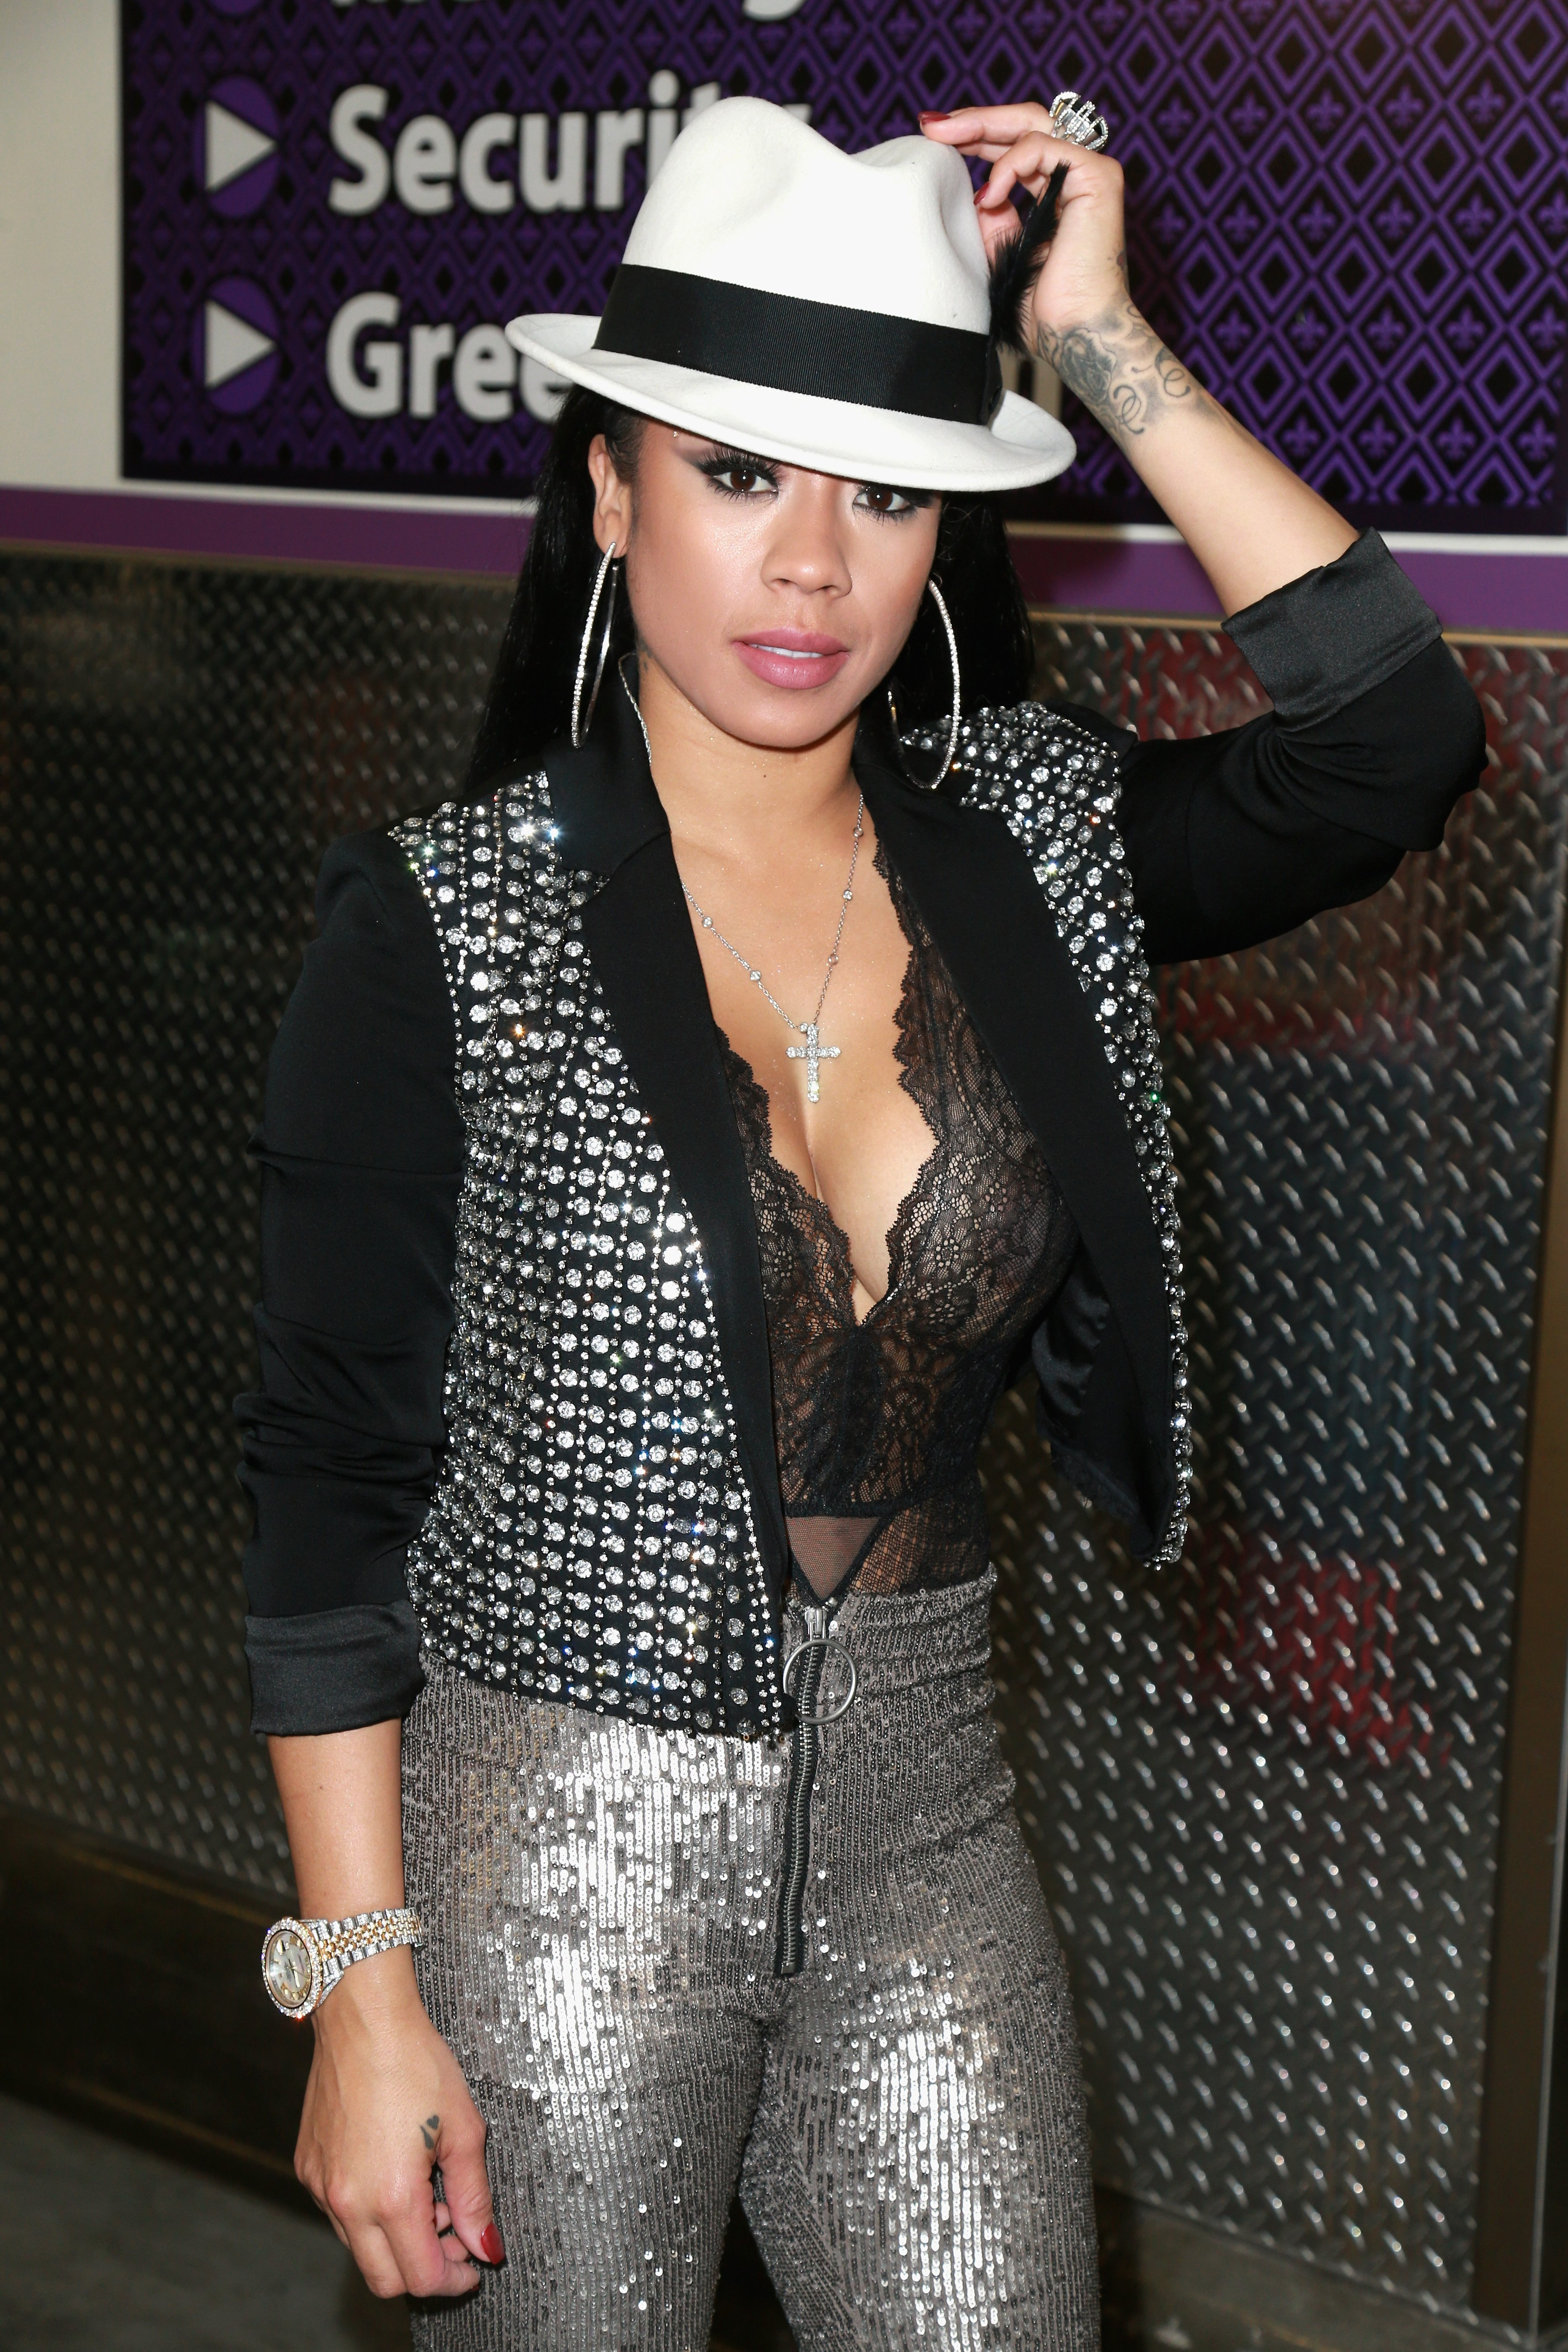 Keyshia Cole at the Soul Train Awards on Nov. 5, 2017 in Las Vegas, Nevada | Photo: Getty Images